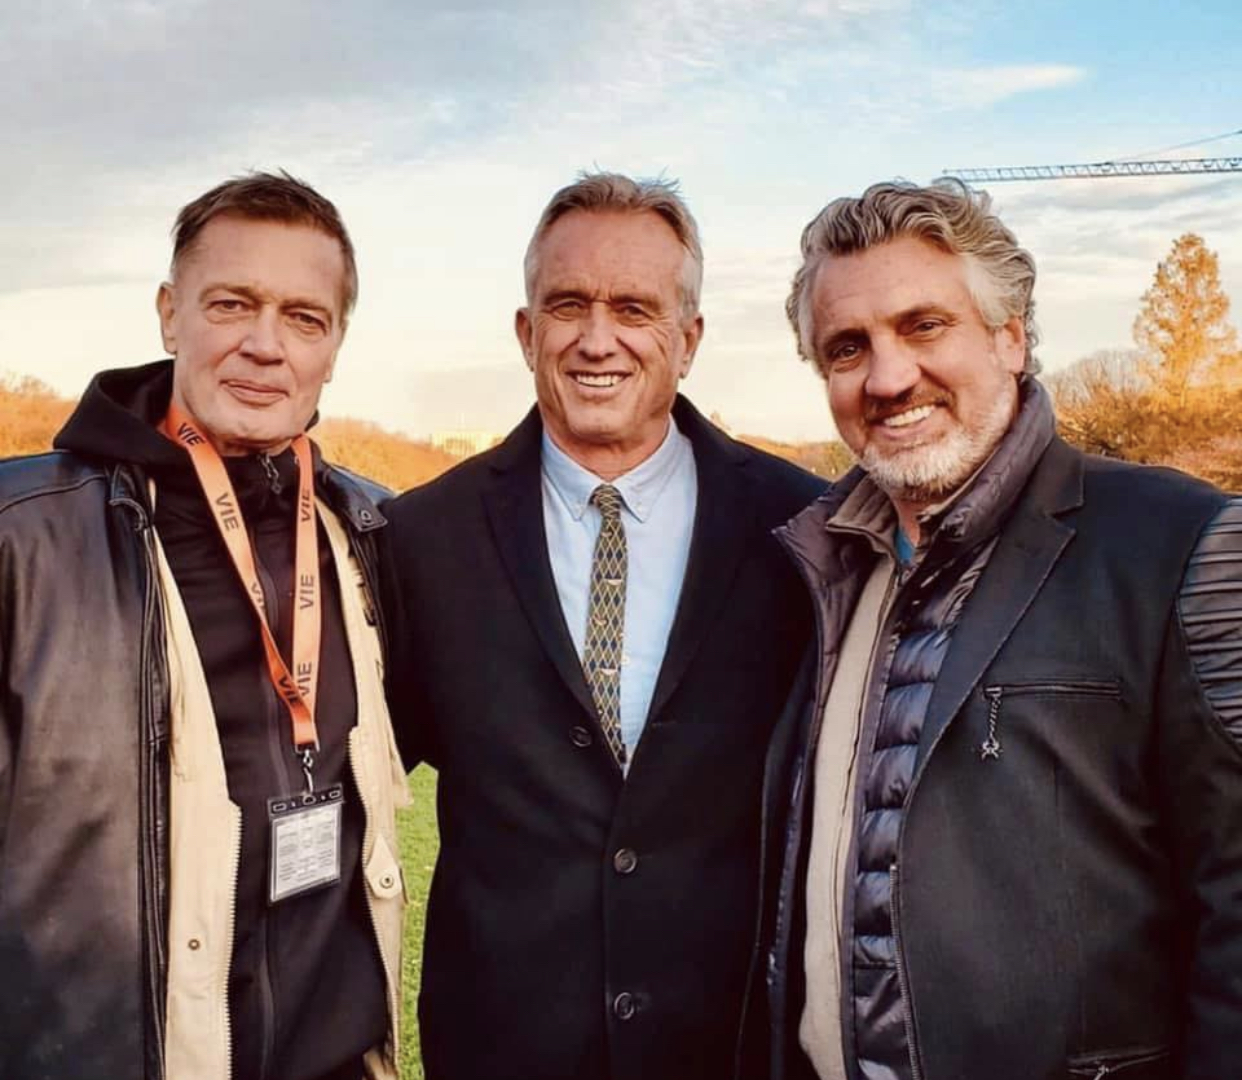 Robert F. Kennedy Jr., Del Matthew Bigtree, and Andrew Wakefield at an event for Vaxxed II: The People's Truth (2019)